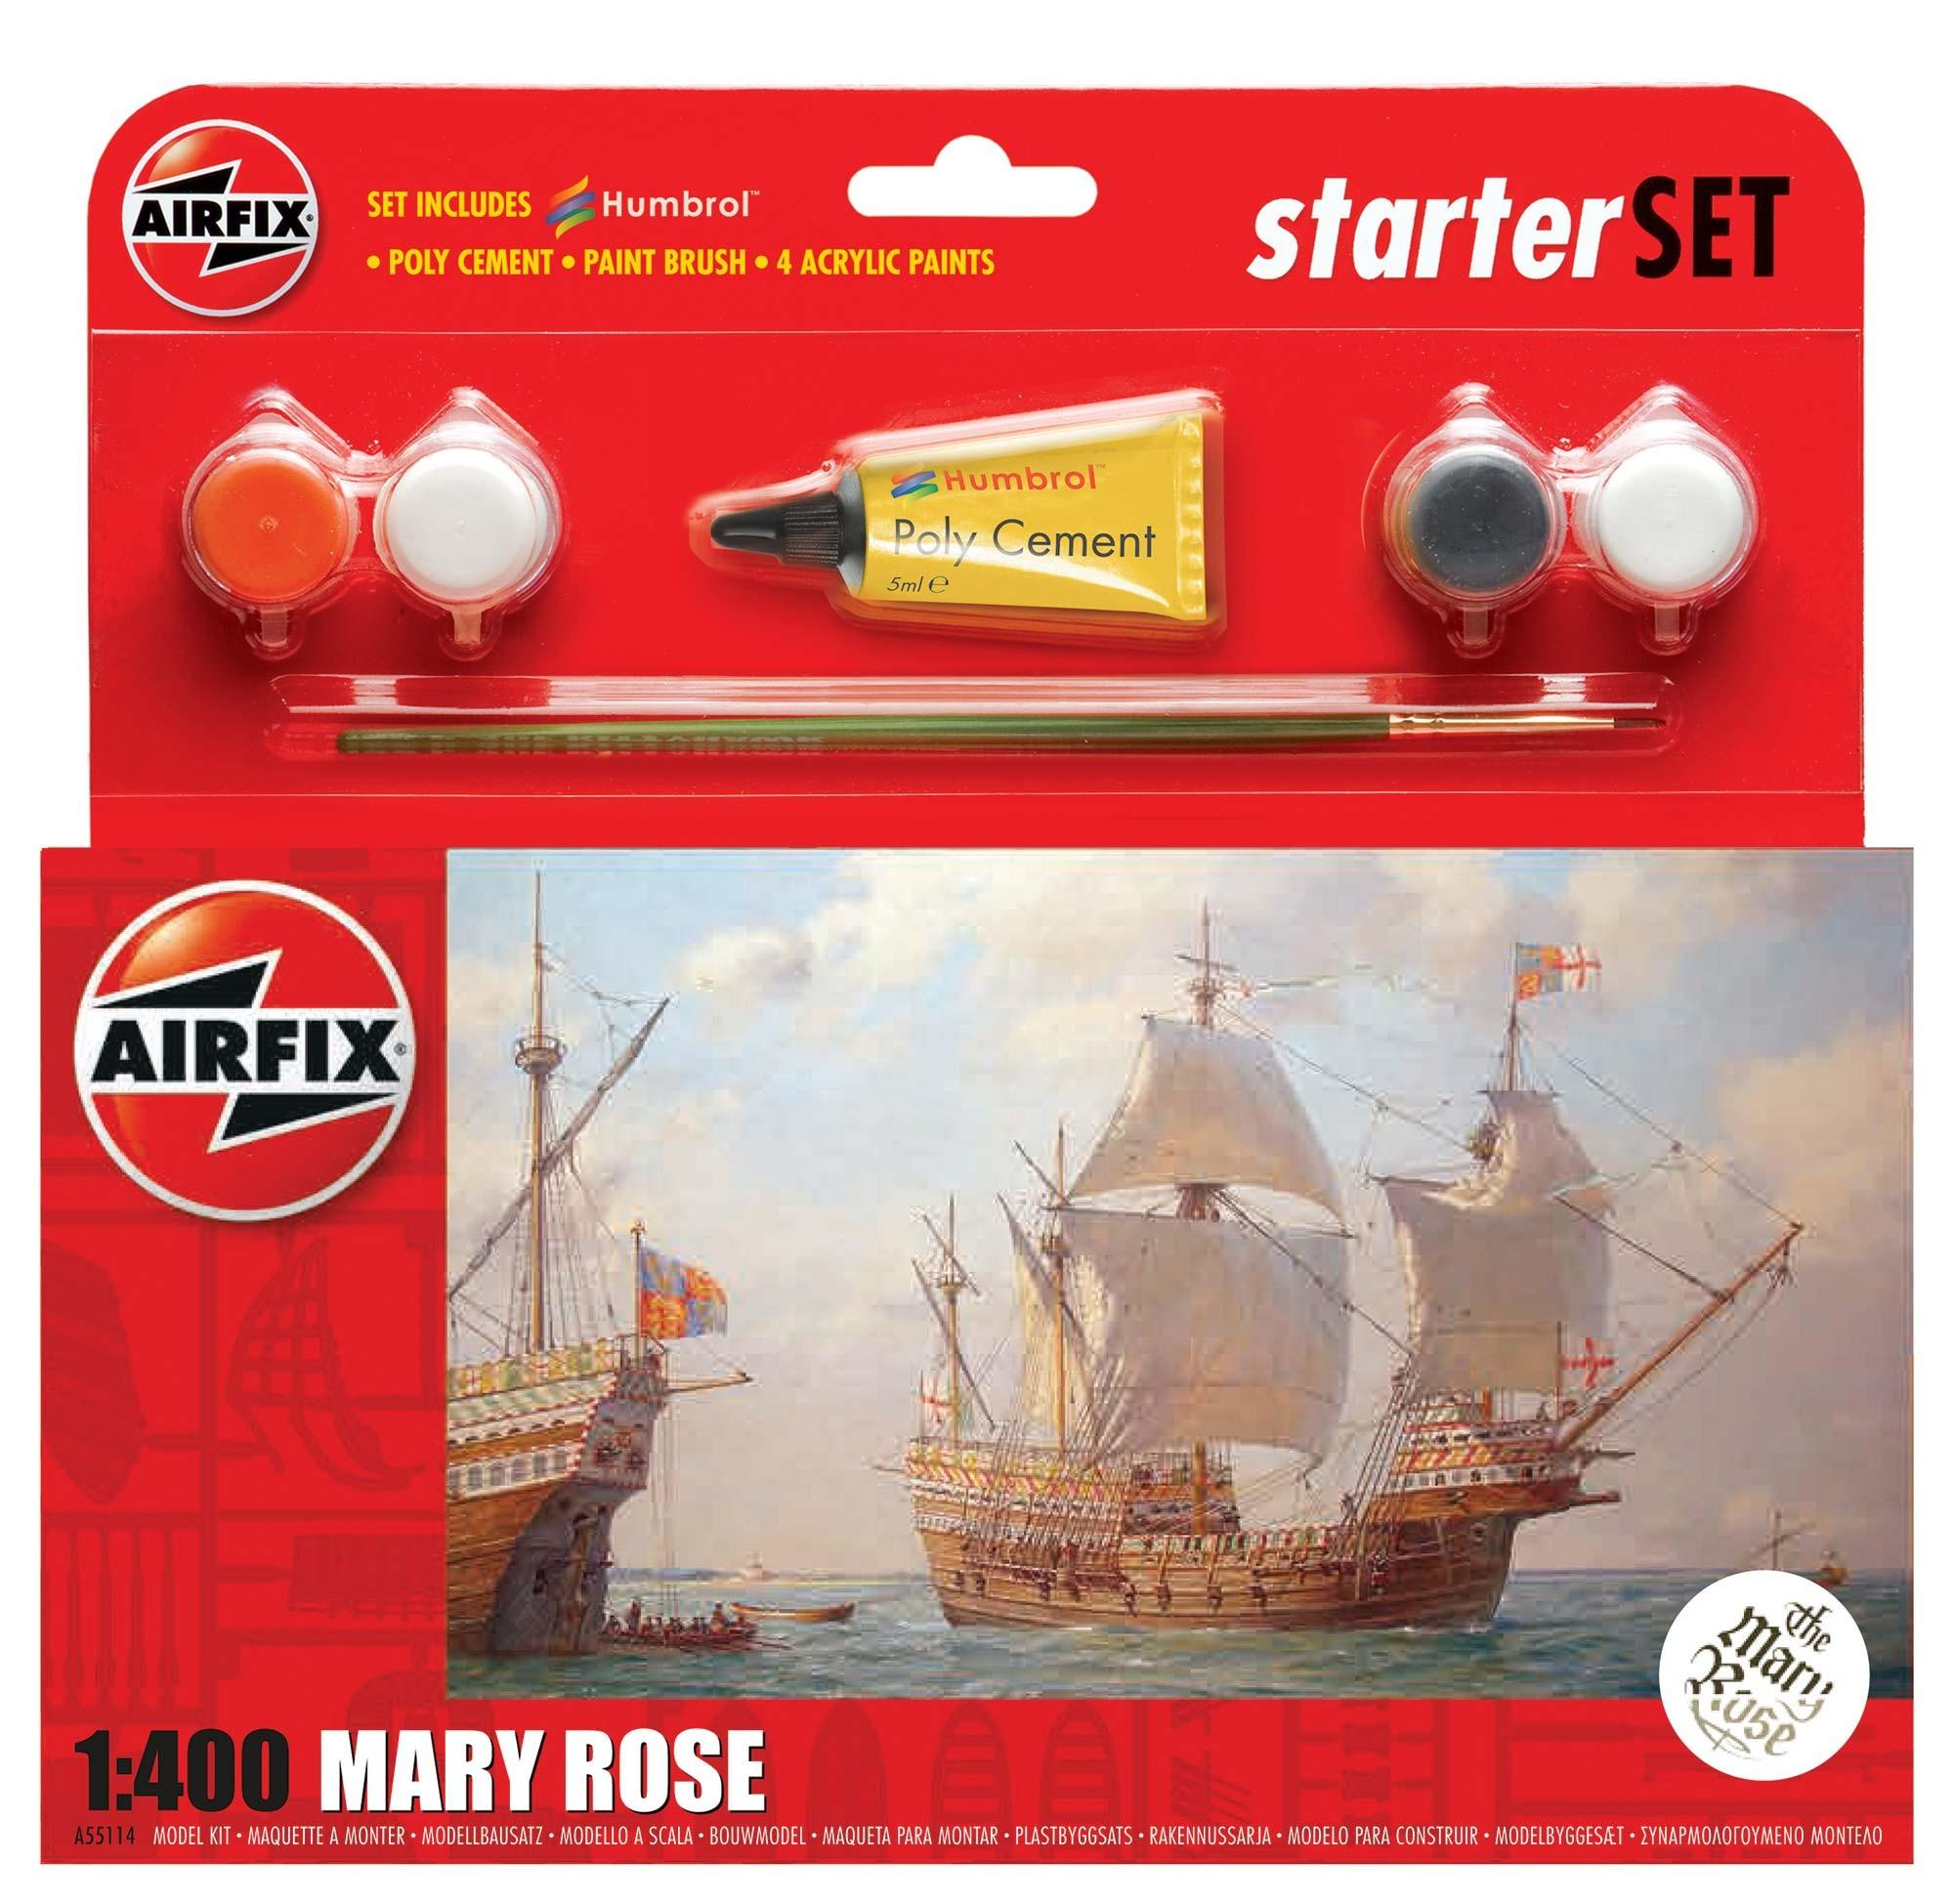 Airfix Starter Set Mary Rose1